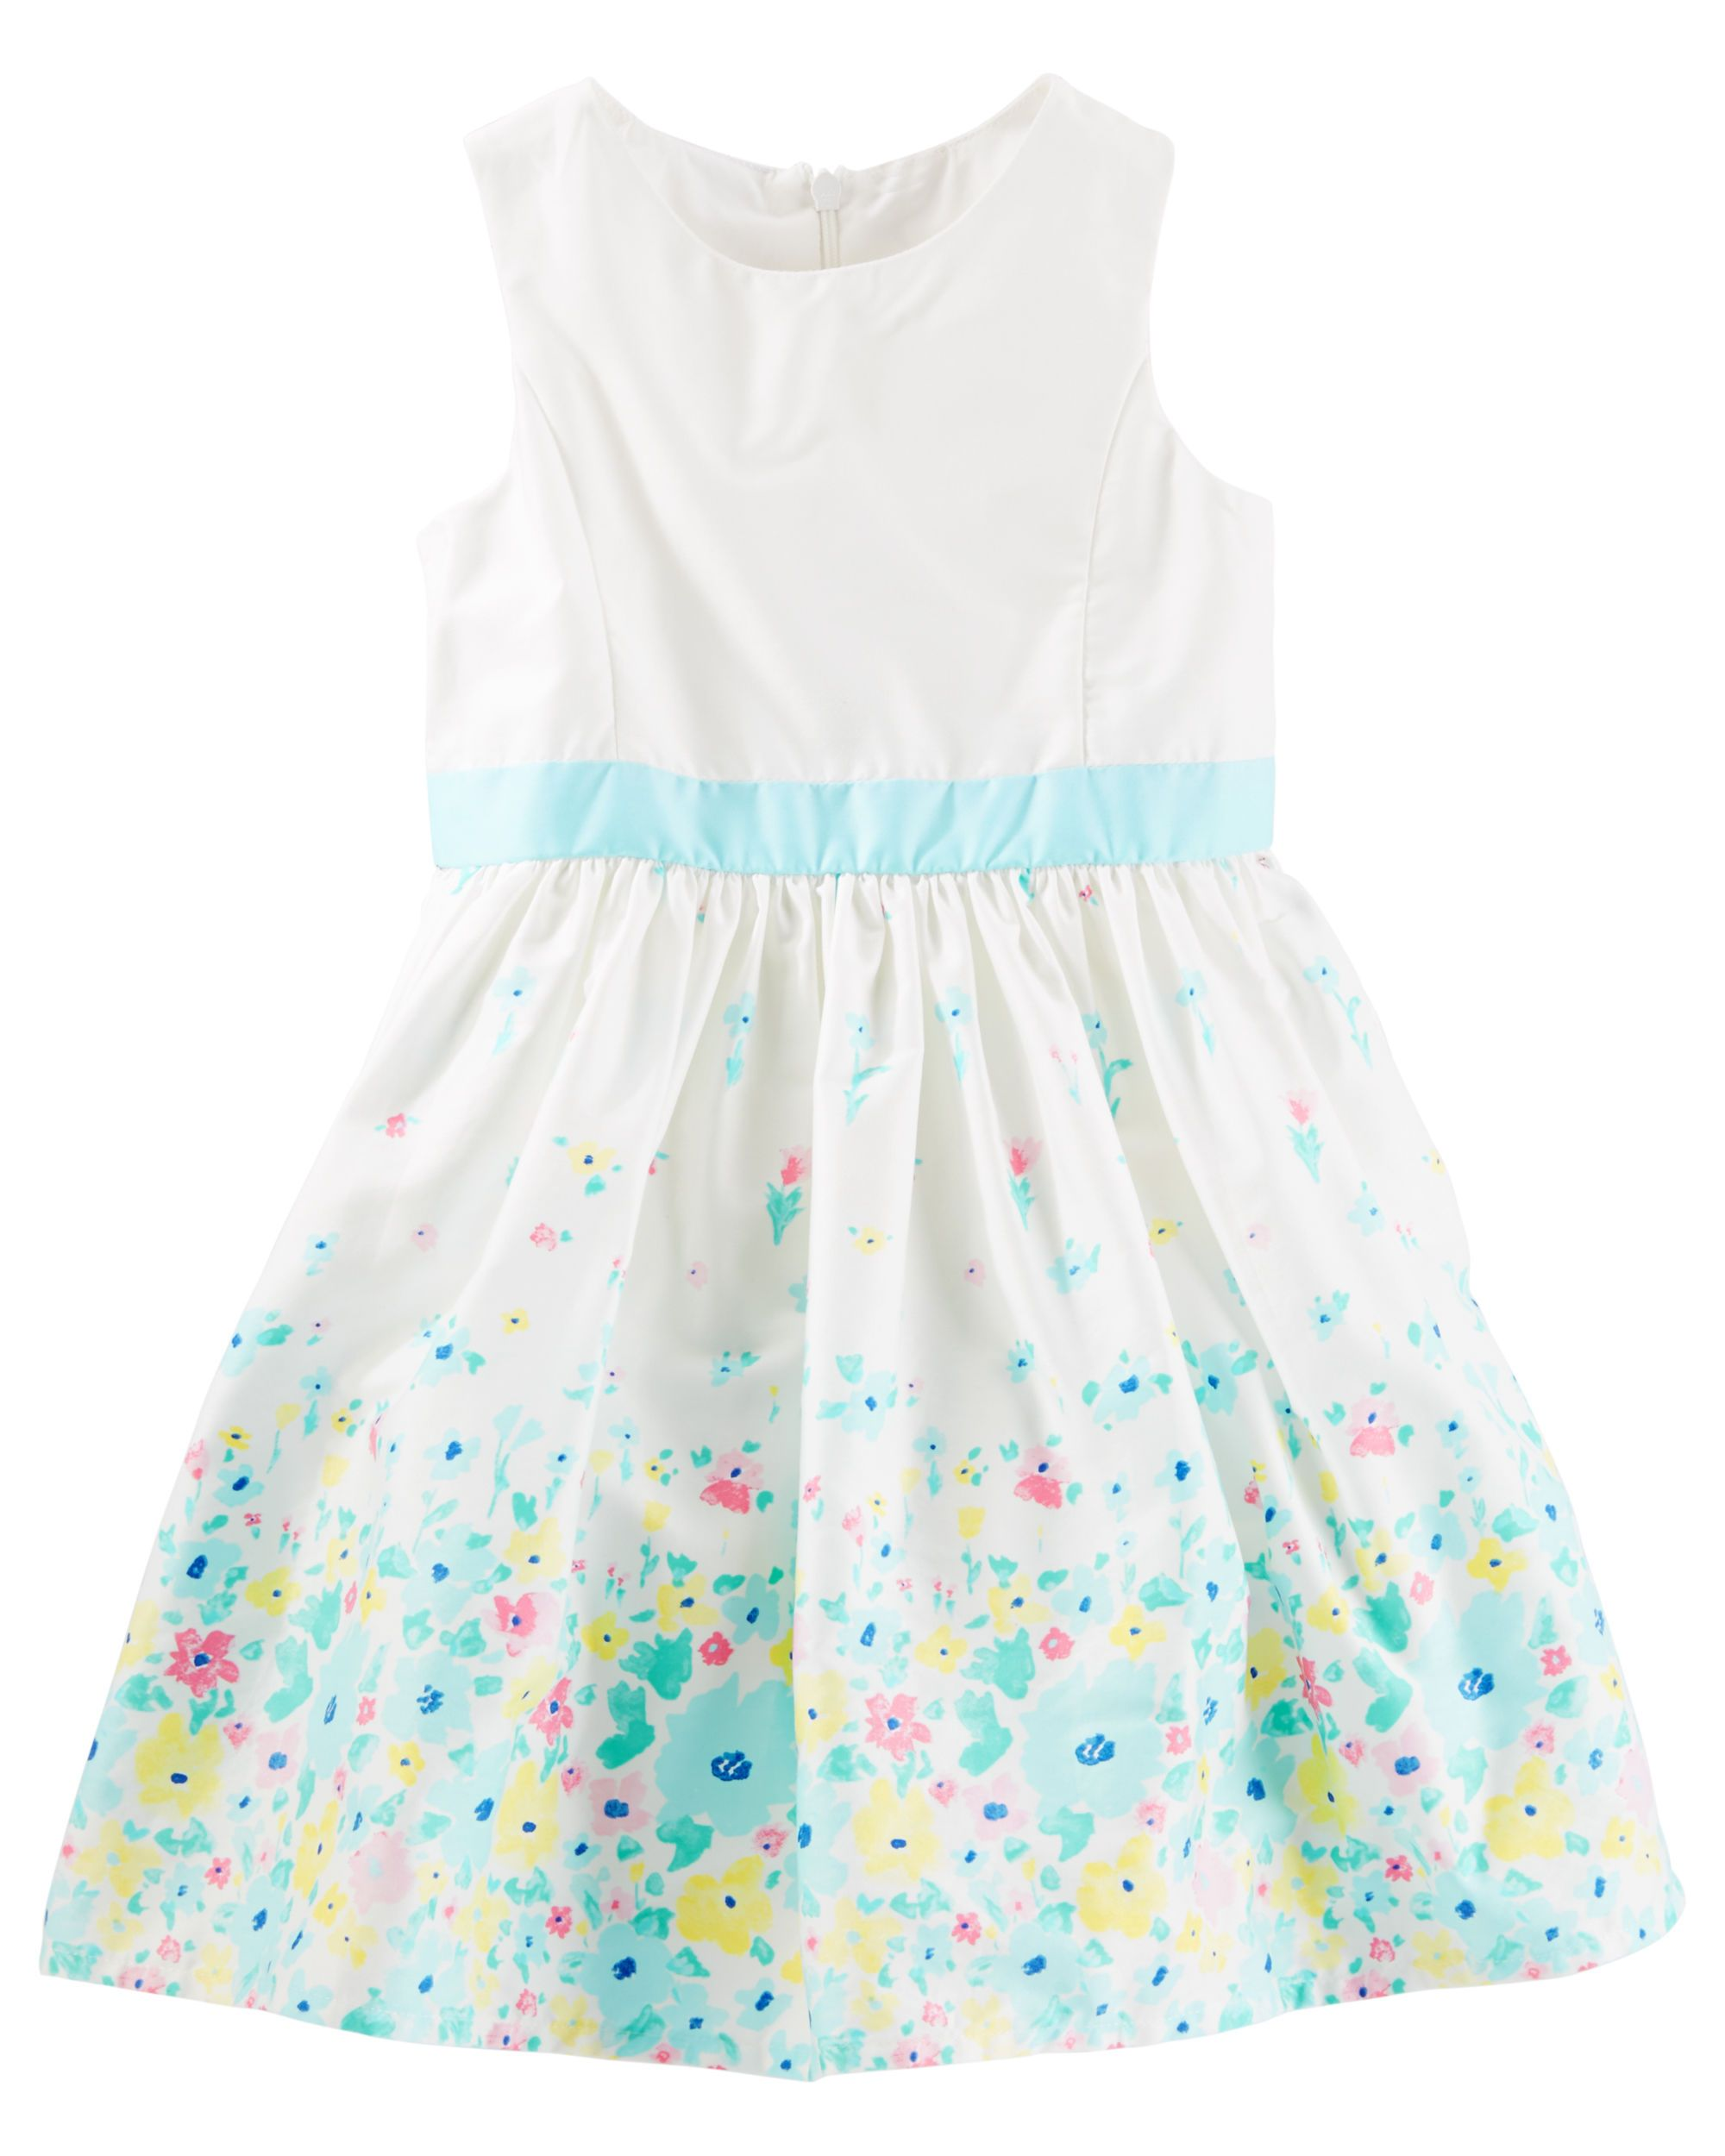 da615d46c Kid Girl Floral Border Print Dress from OshKosh B'gosh. Shop clothing &  accessories from a trusted name in kids, toddlers, and baby clothes.